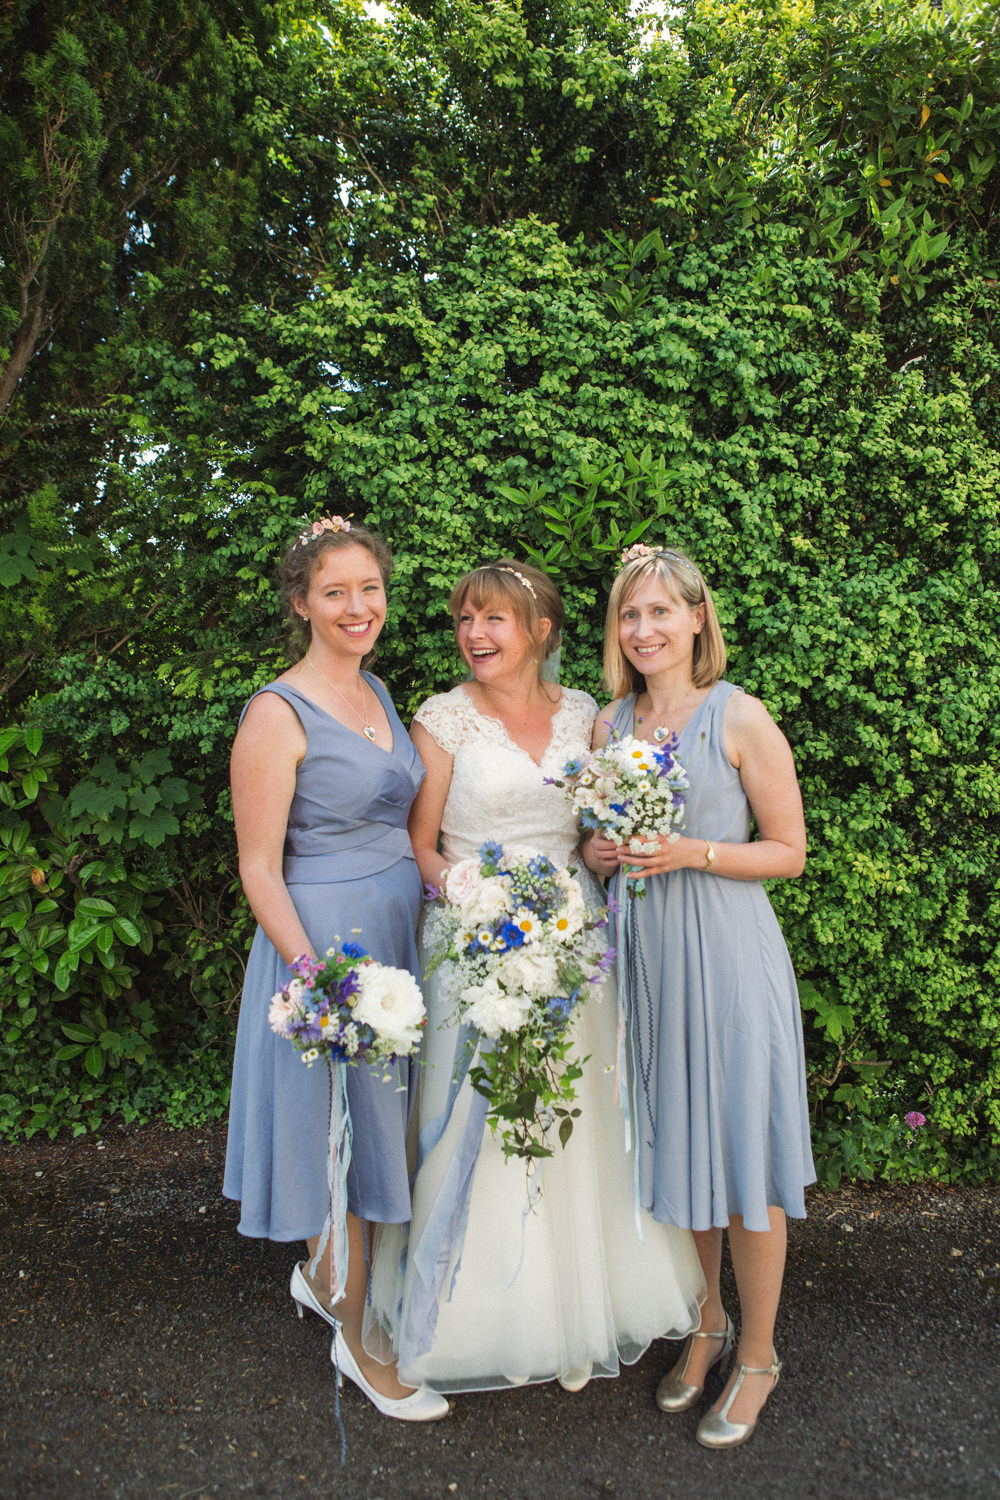 Bride Bridal Ballerina Length Dress Lace Sleeves Blue Dress Bridesmaids Posy Veil Middle Coombe Farm Wedding Emma Stoner Photo